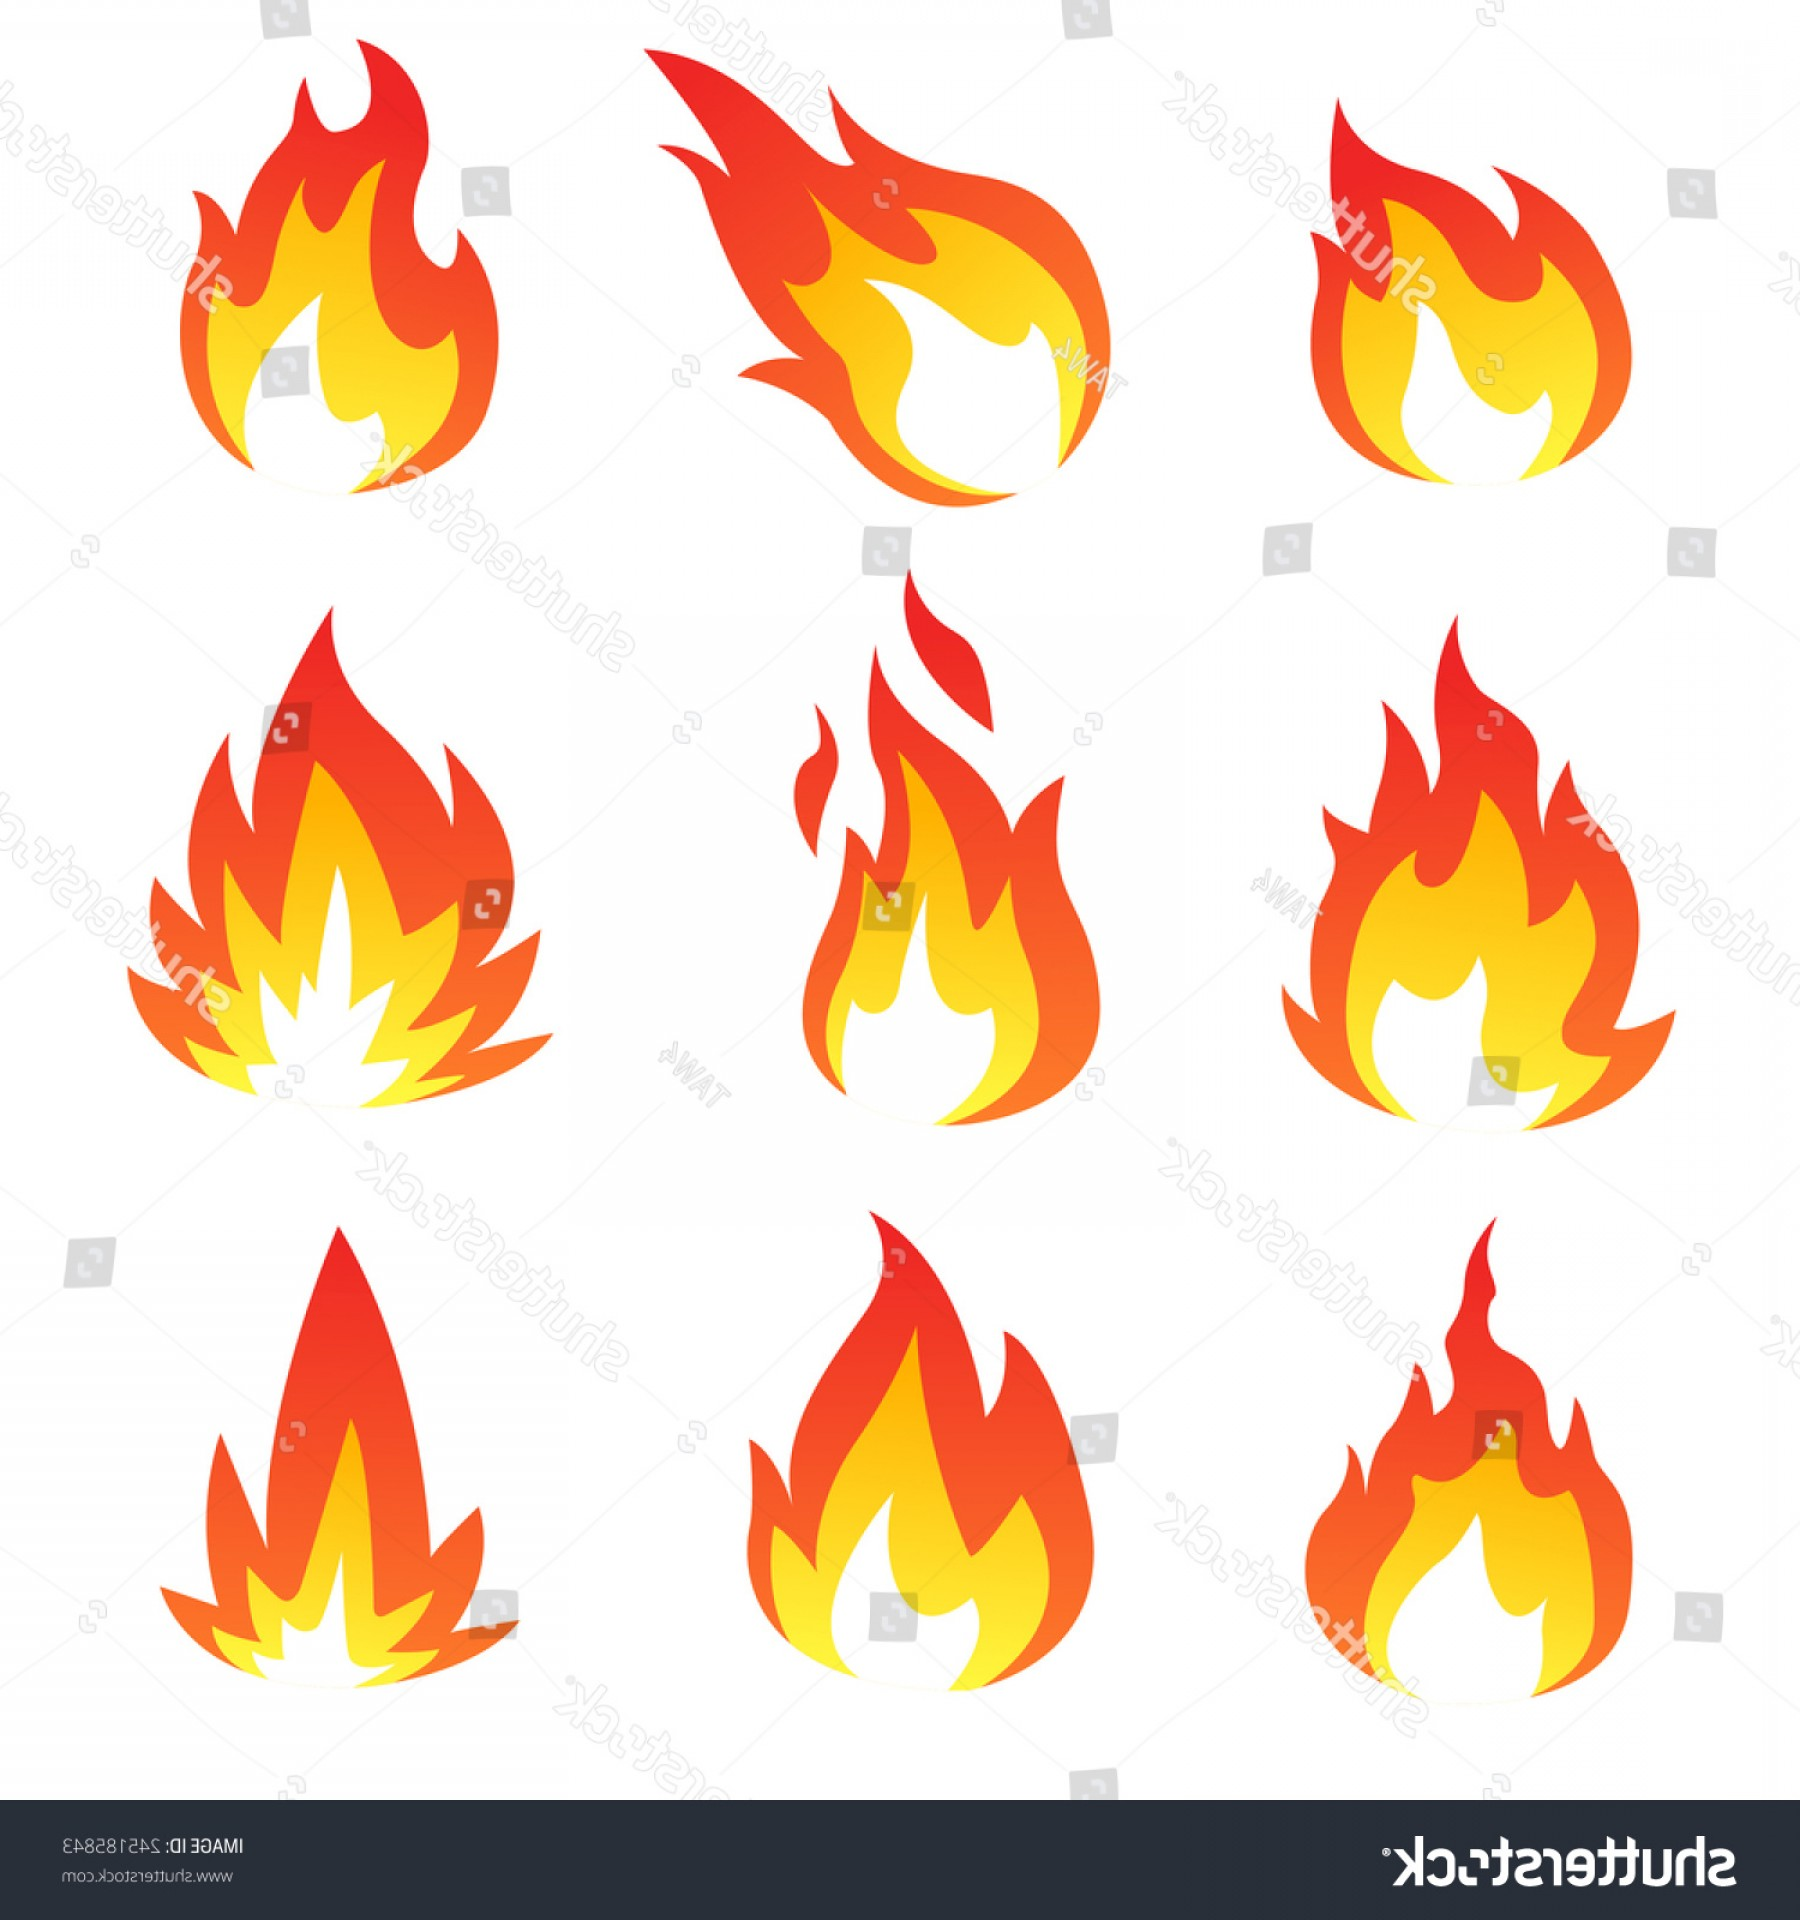 Fire Clip Art Vector: Flame Collection Vector Art Illustration